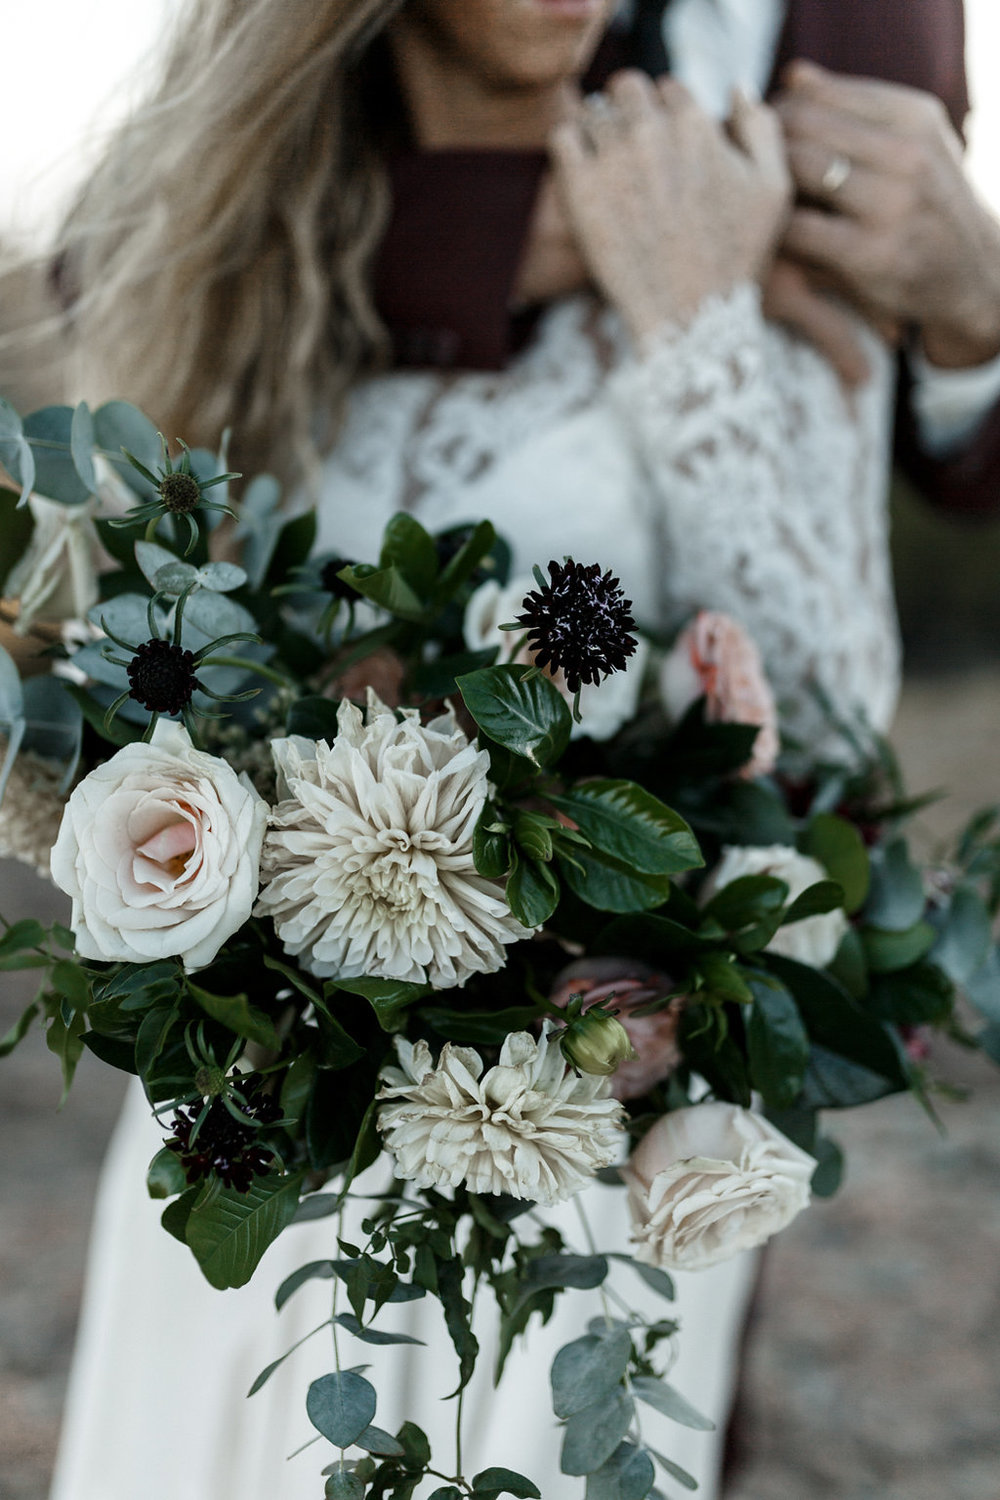 Eucalyptus, dahlia, rose bridal bouquet | Malibu Mountains Weddings | Compass Floral Design | Wedding Florist in San Diego and Southern California | Devin Jenkins Photography  #elopement   #elopementinspiration   #wedding   #weddinginspiration  #bohowedding   #bohemianwedding  #weddingceremony   #outdoorceremony  #sandiegoweddingflorist   #ojaiweddingflorist   #santabarbaraweddingflorist  #romanticweddingflowers   #bridalstyle  #weddingfashion